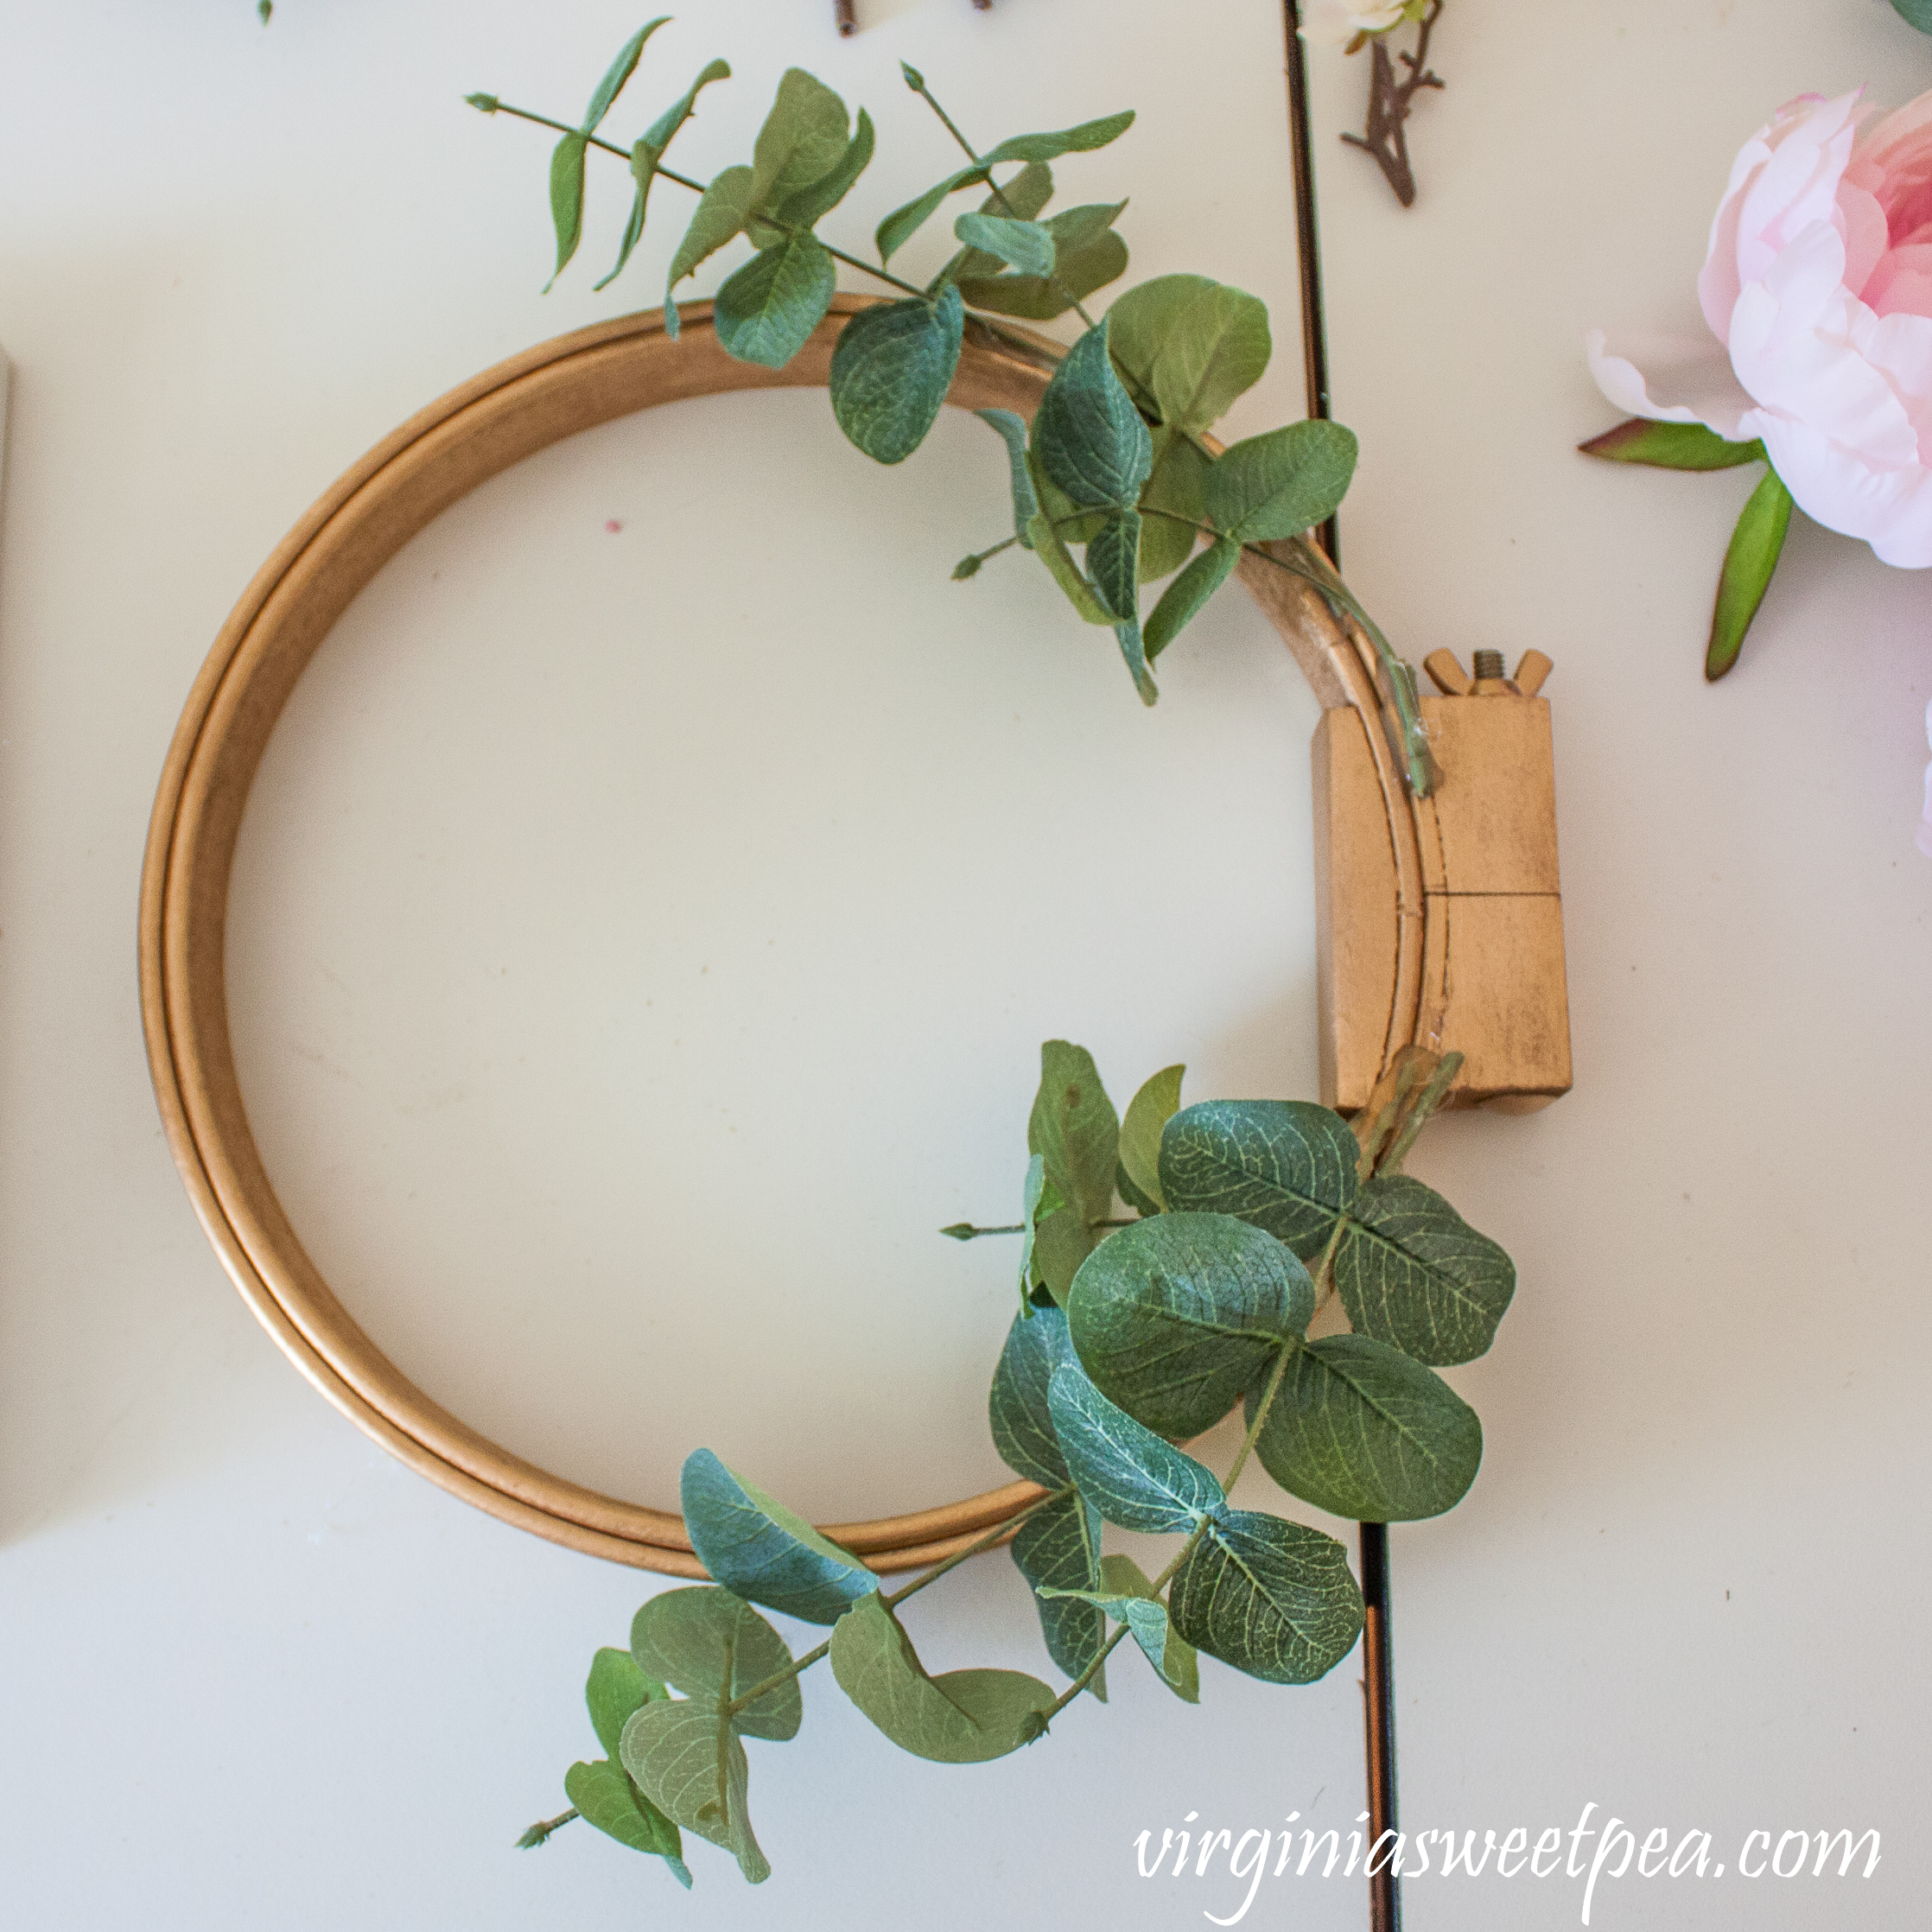 How to make an embroidery hoop wreath